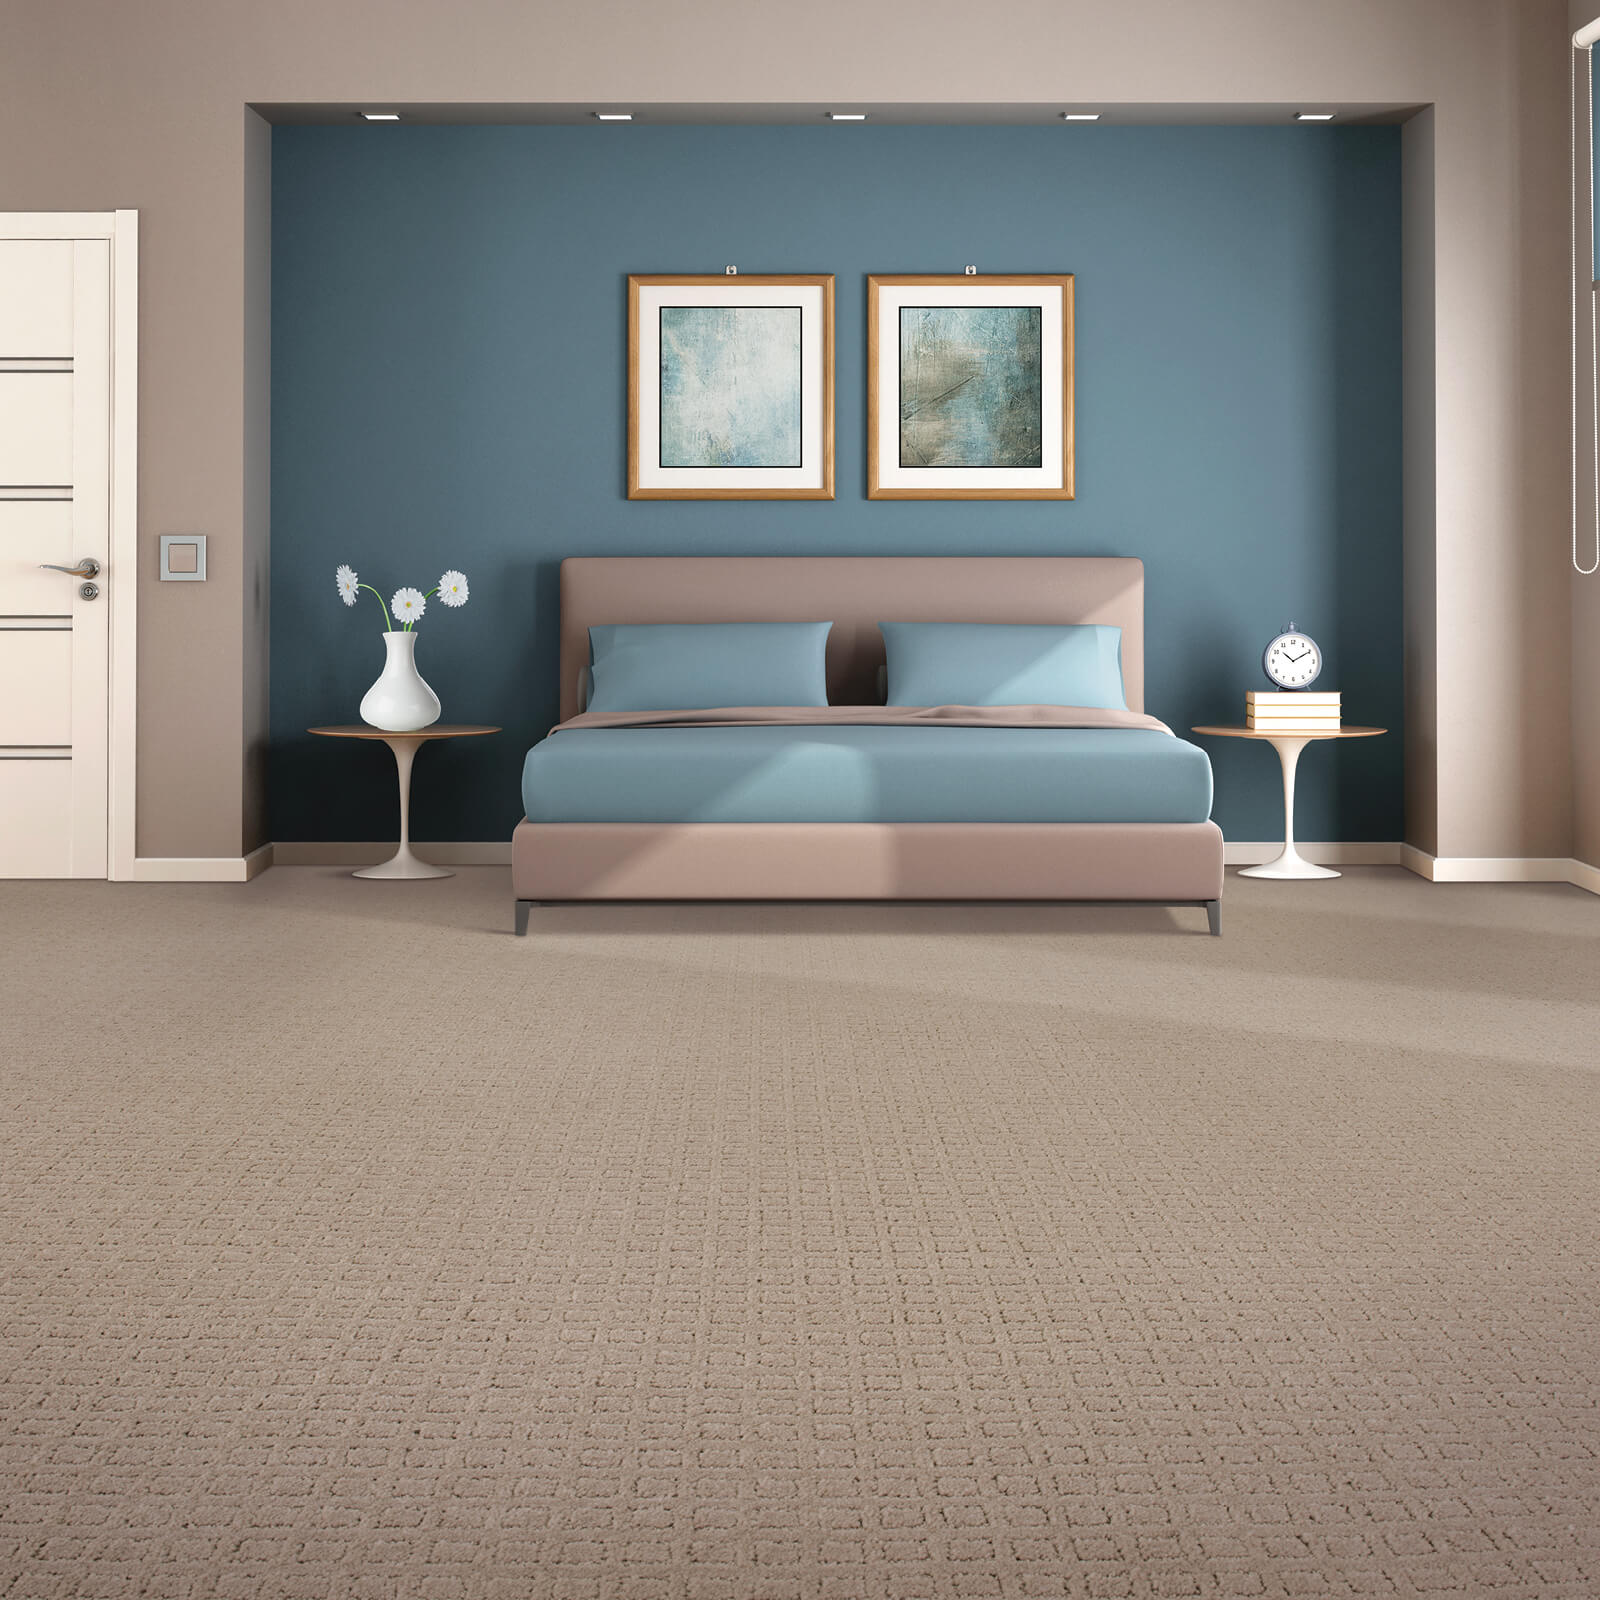 Traditional Beauty of bedroom | Georgia Flooring